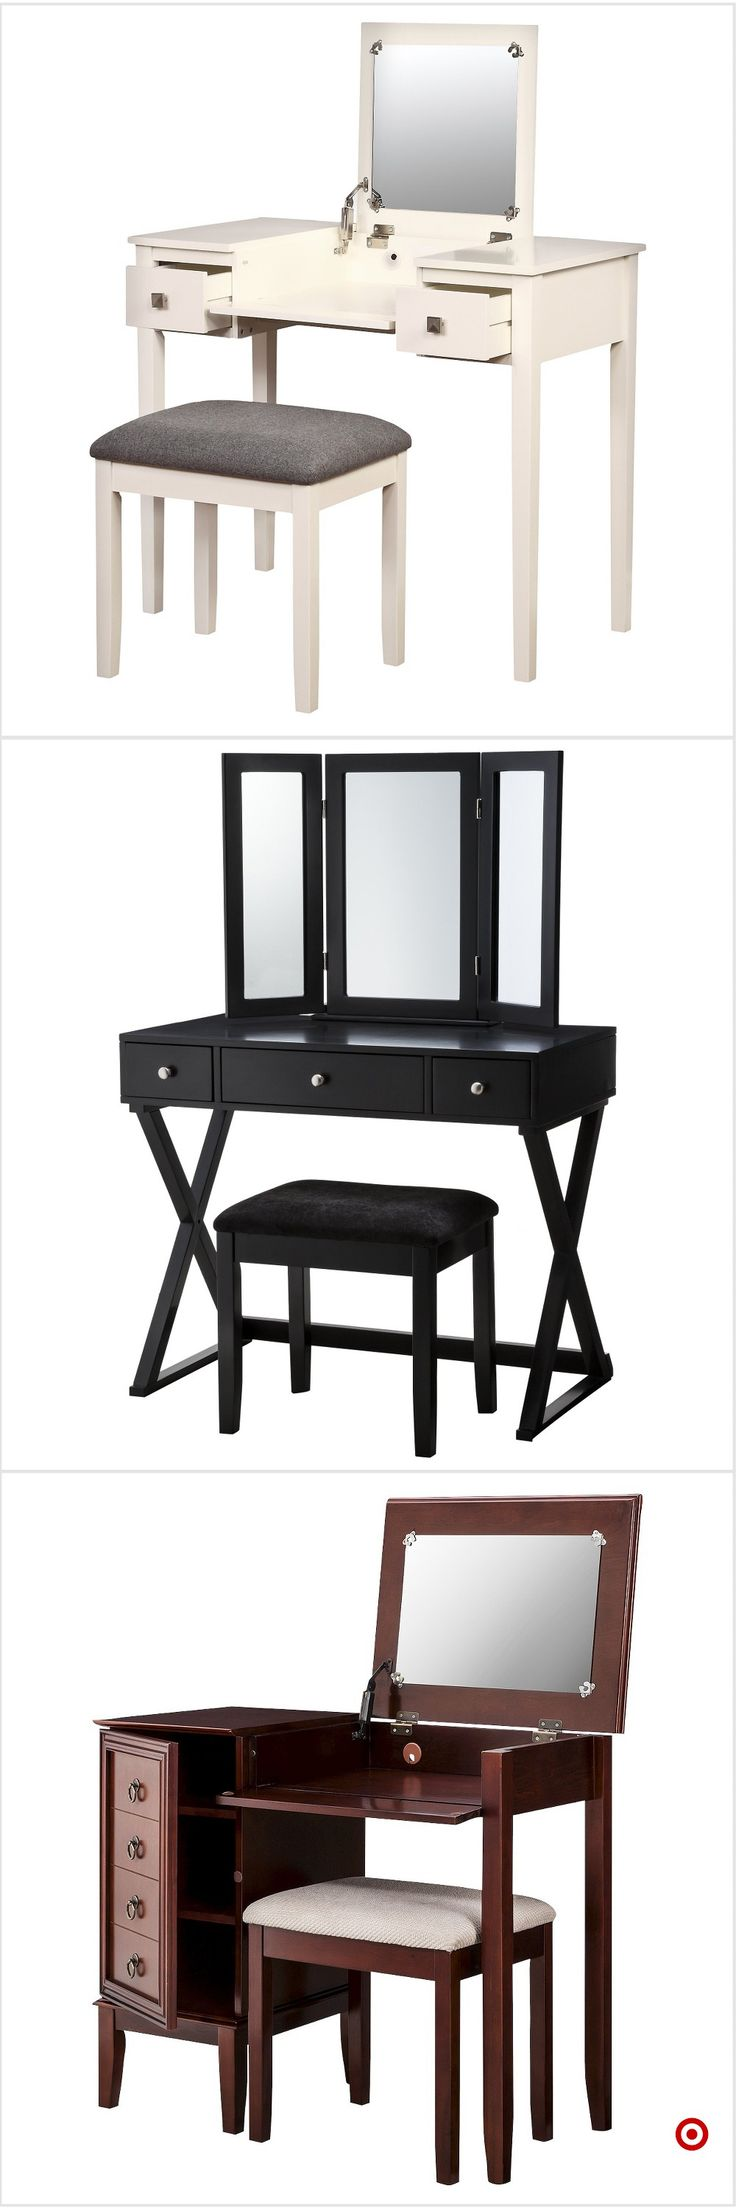 Shop Target for vanity set you will love at great low prices. Free shipping on orders of $35+ or free same-day pick-up in store.